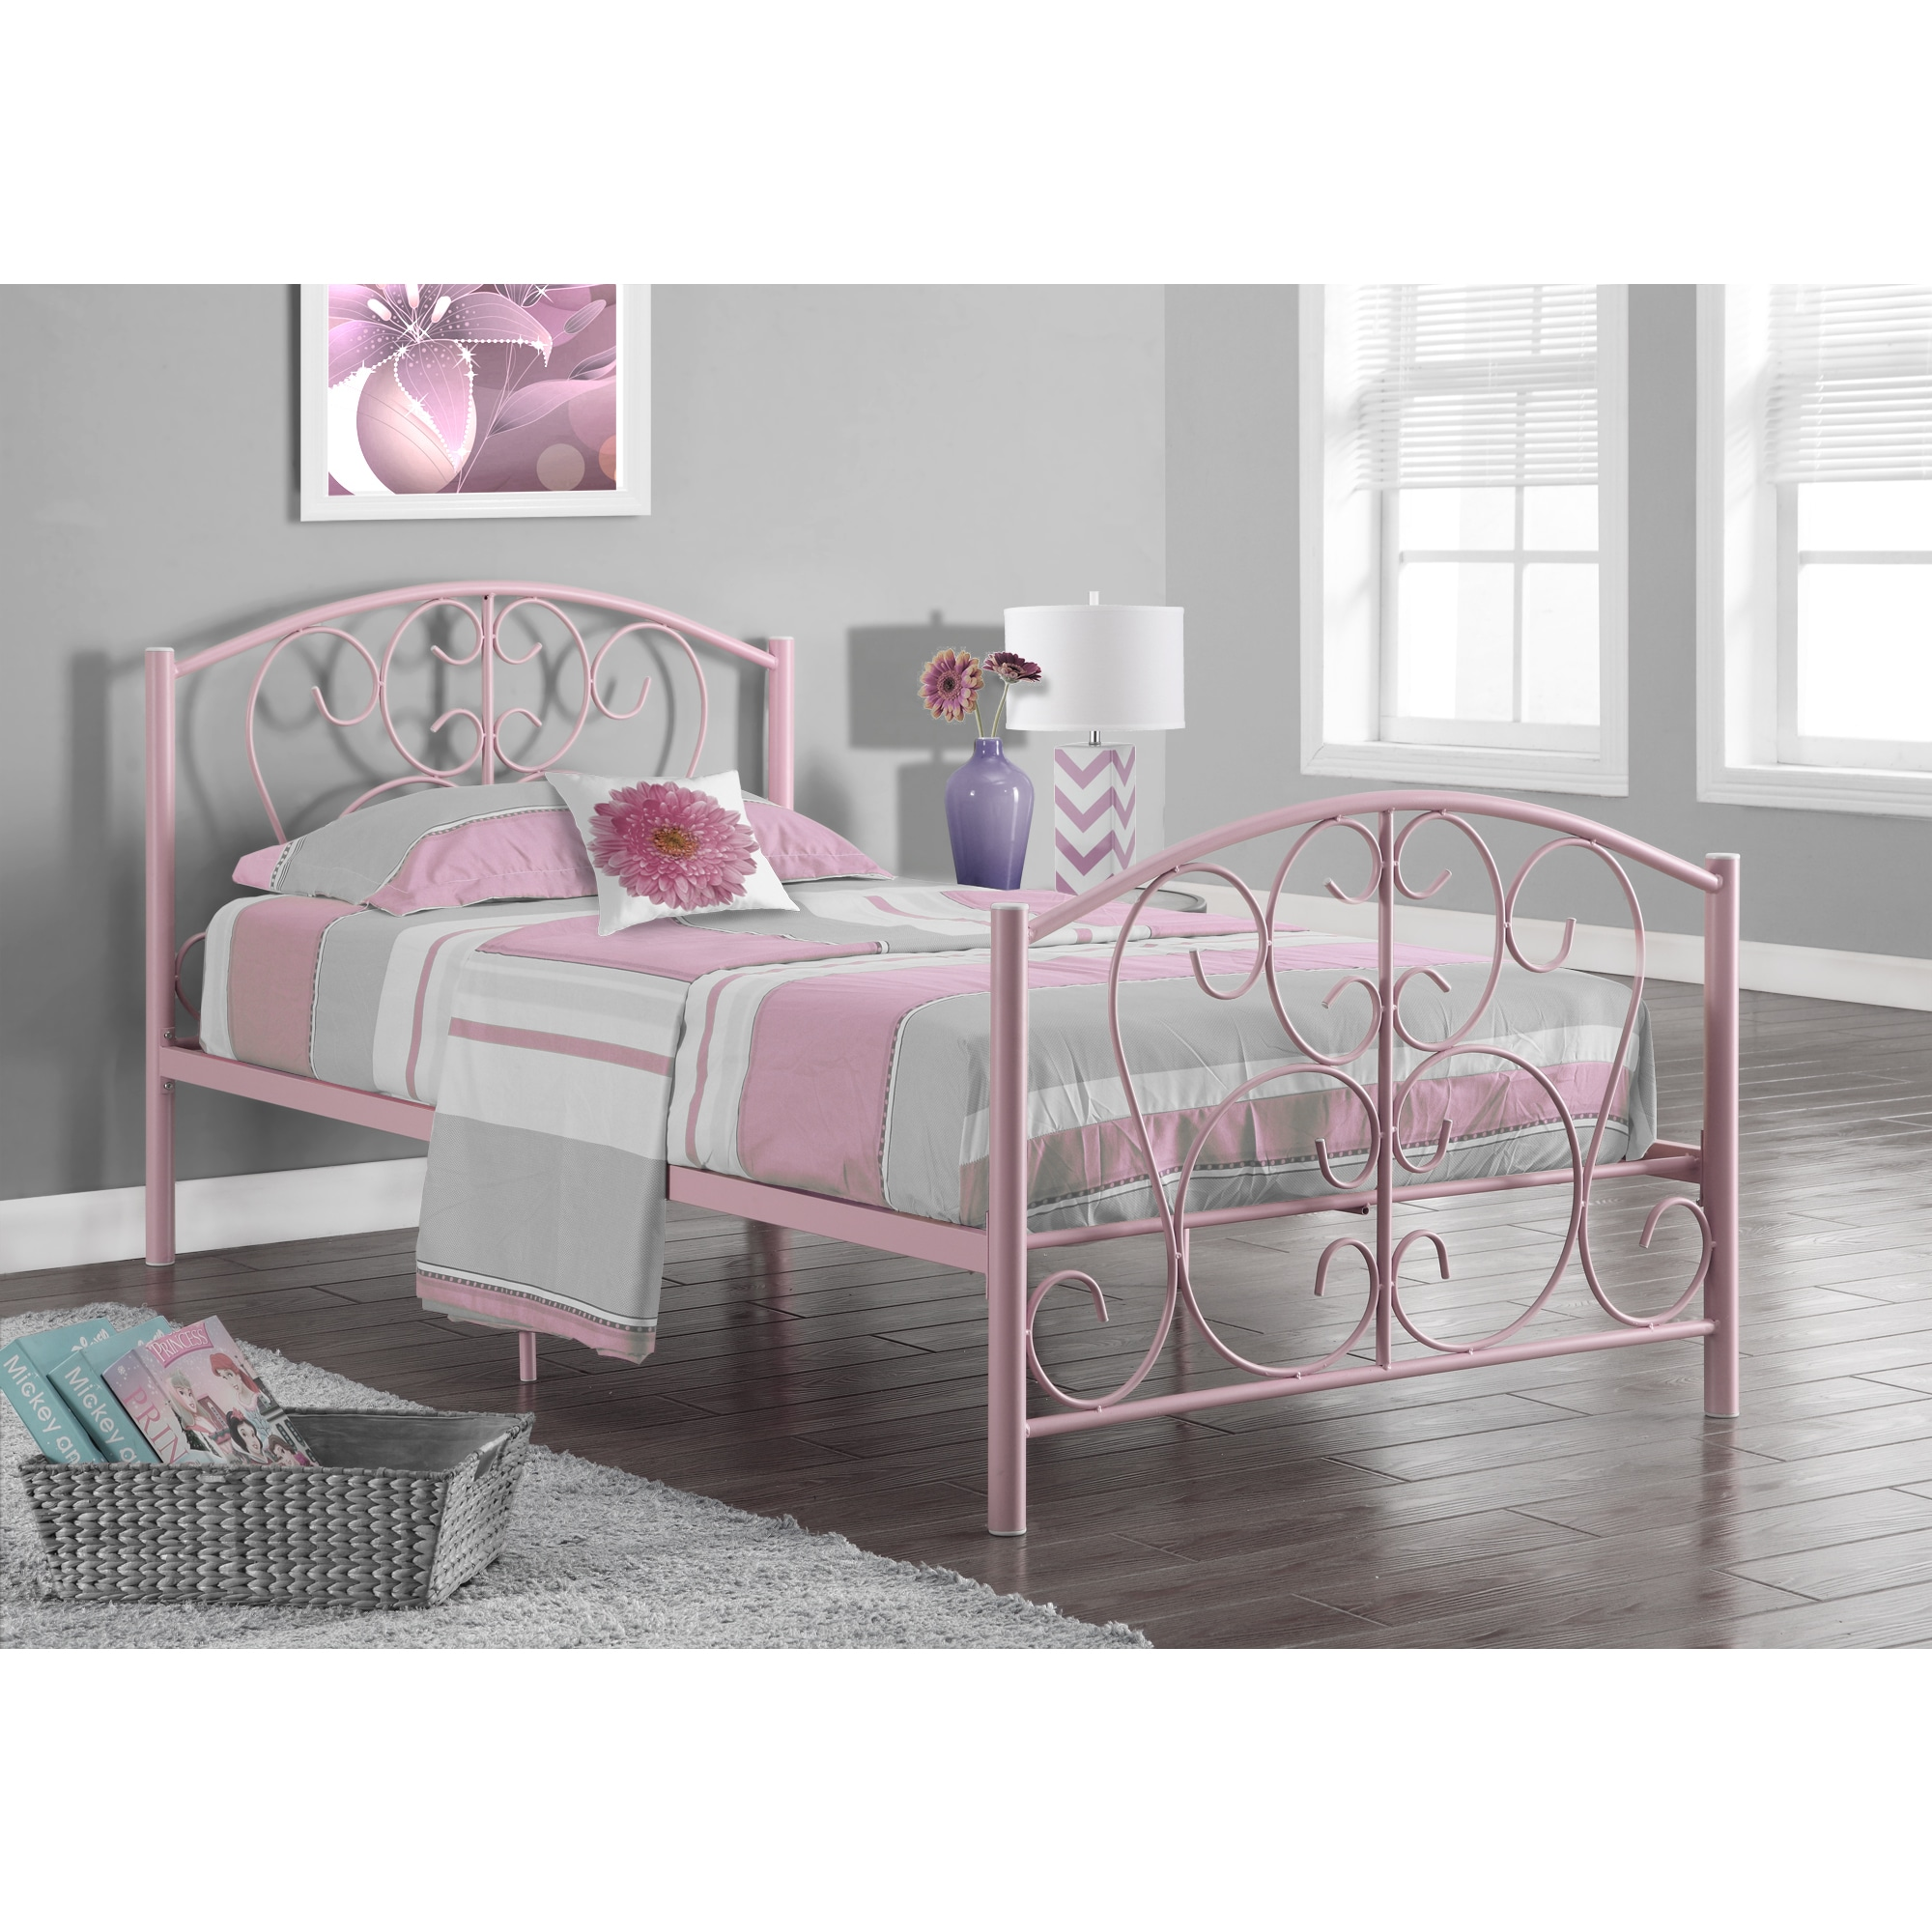 Pink Metal Twin Size Bed Frame